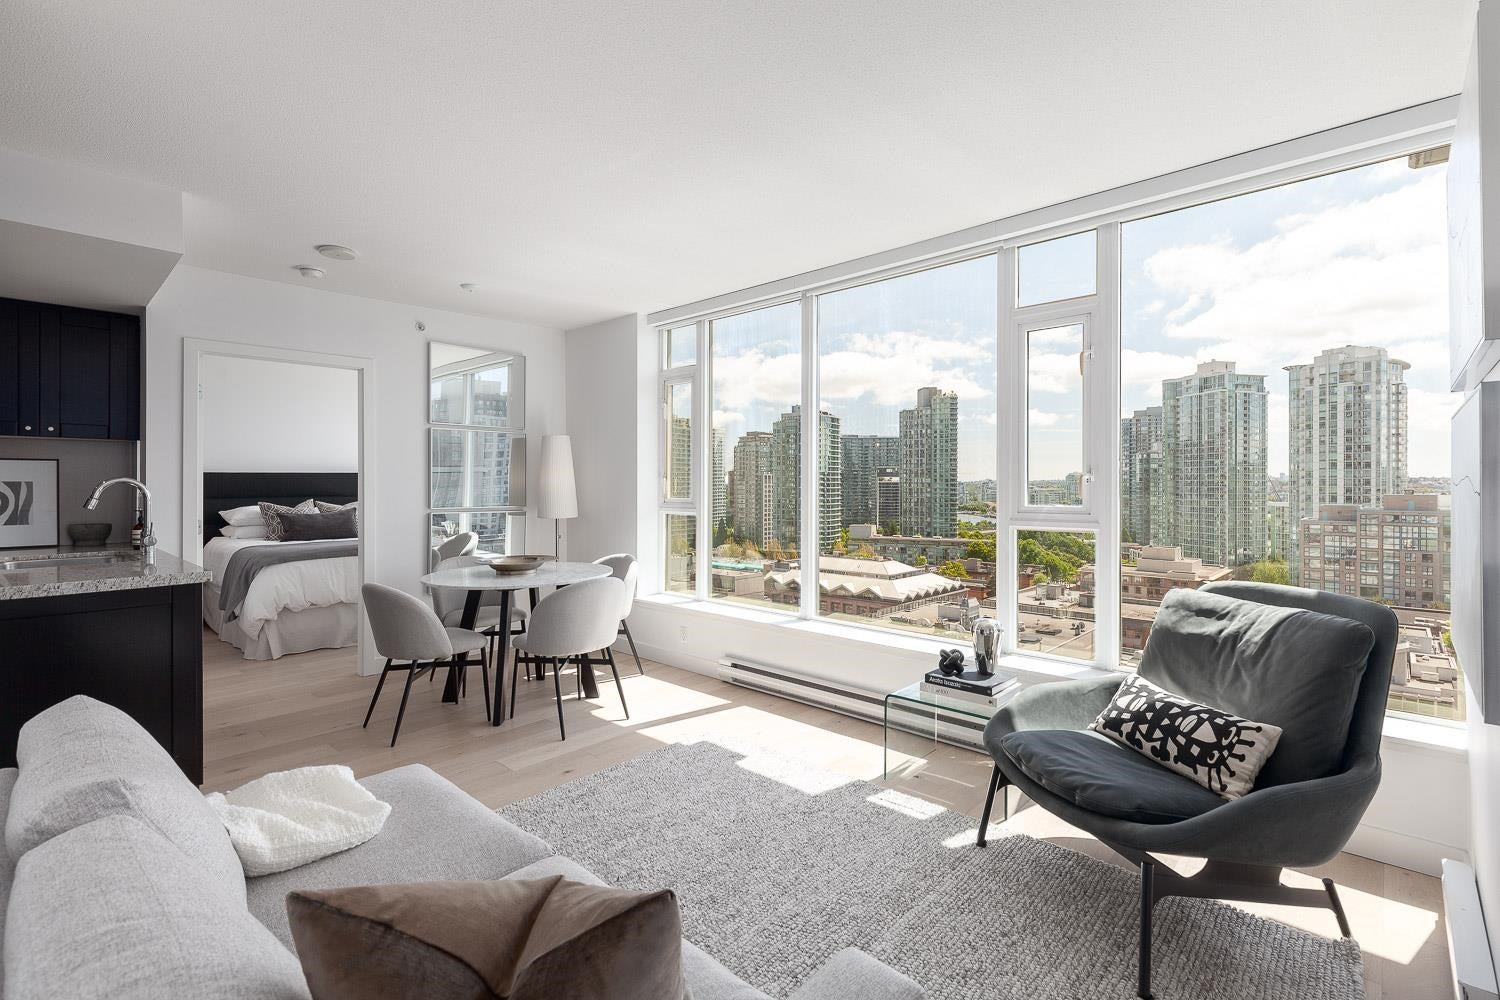 1305 1133 HOMER STREET - Yaletown Apartment/Condo for sale, 2 Bedrooms (R2594700)